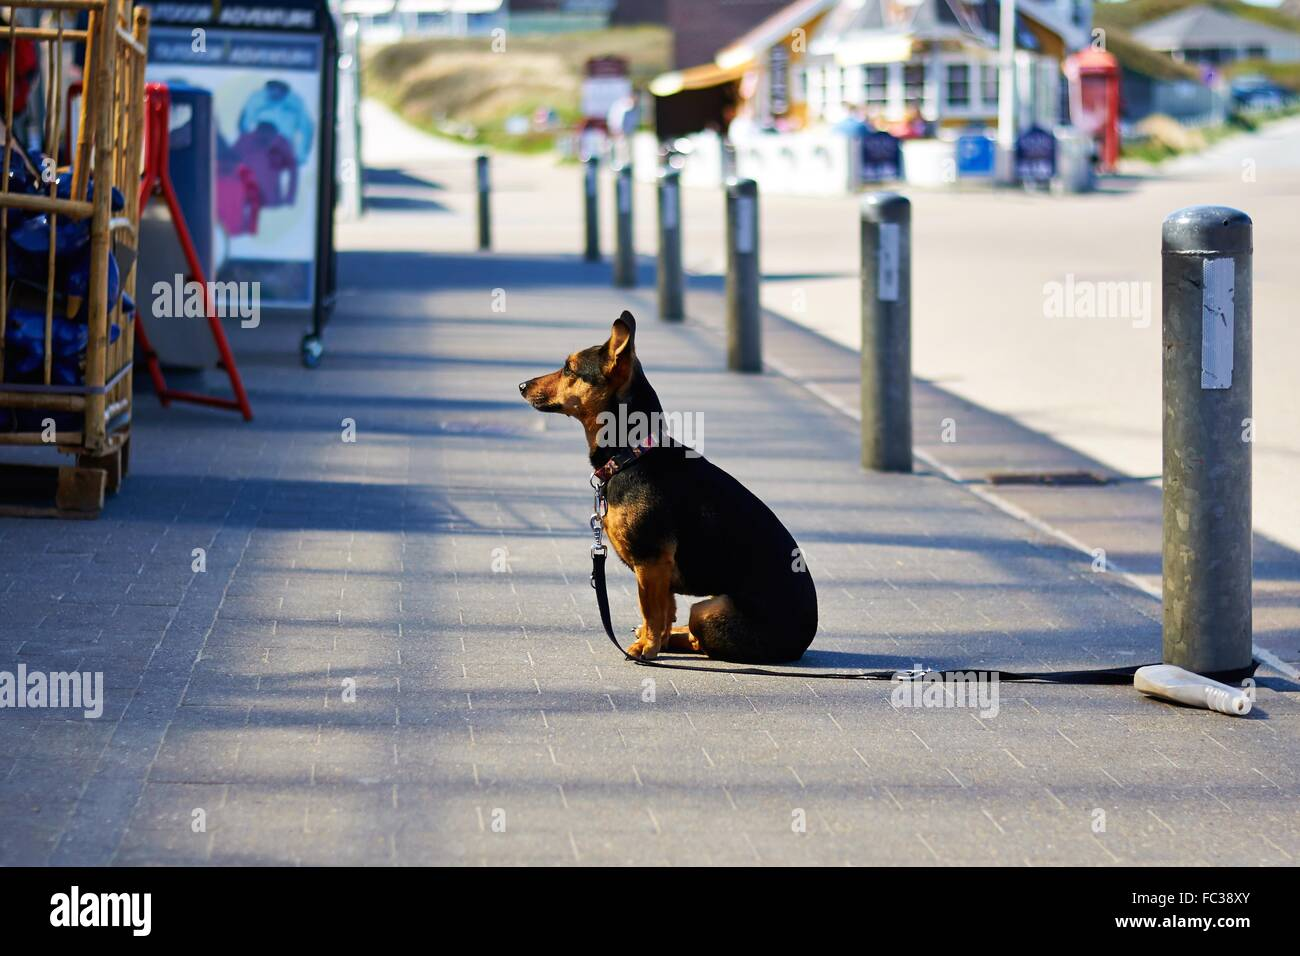 Dog Waiting for his Owner - Stock Image